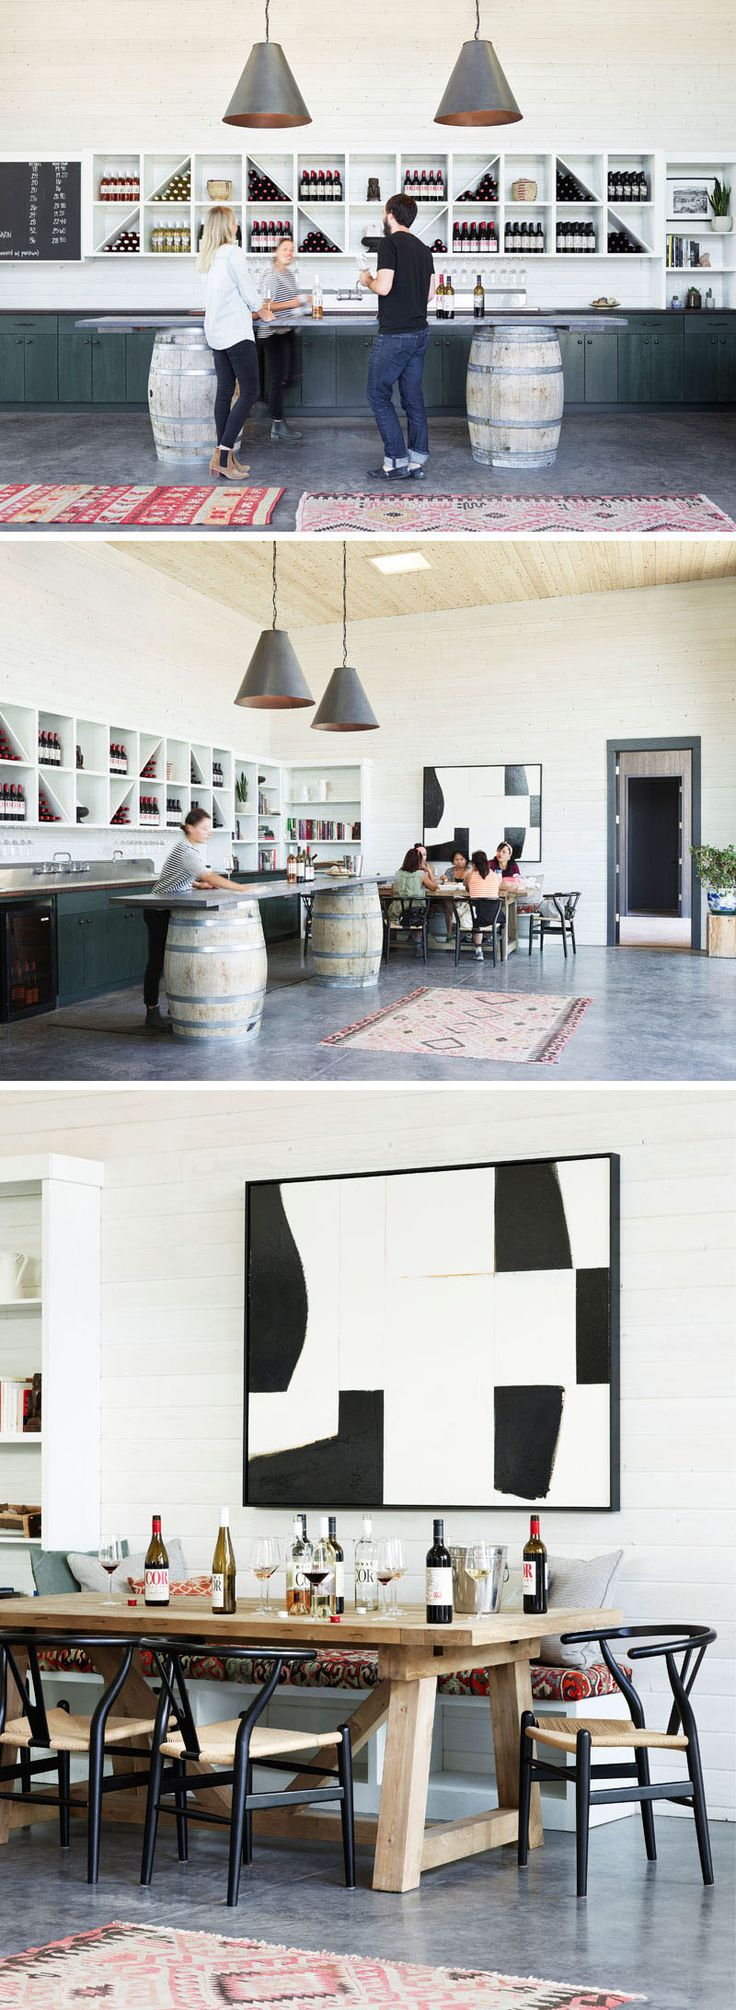 Inside this modern winery tasting room, whitewashed hemlock planks cover the walls, and a tasting bar sits on top of two wine barrels. Open shelving displays all of the current wines. At the end of the bar is a larger table with bench seating for small groups.